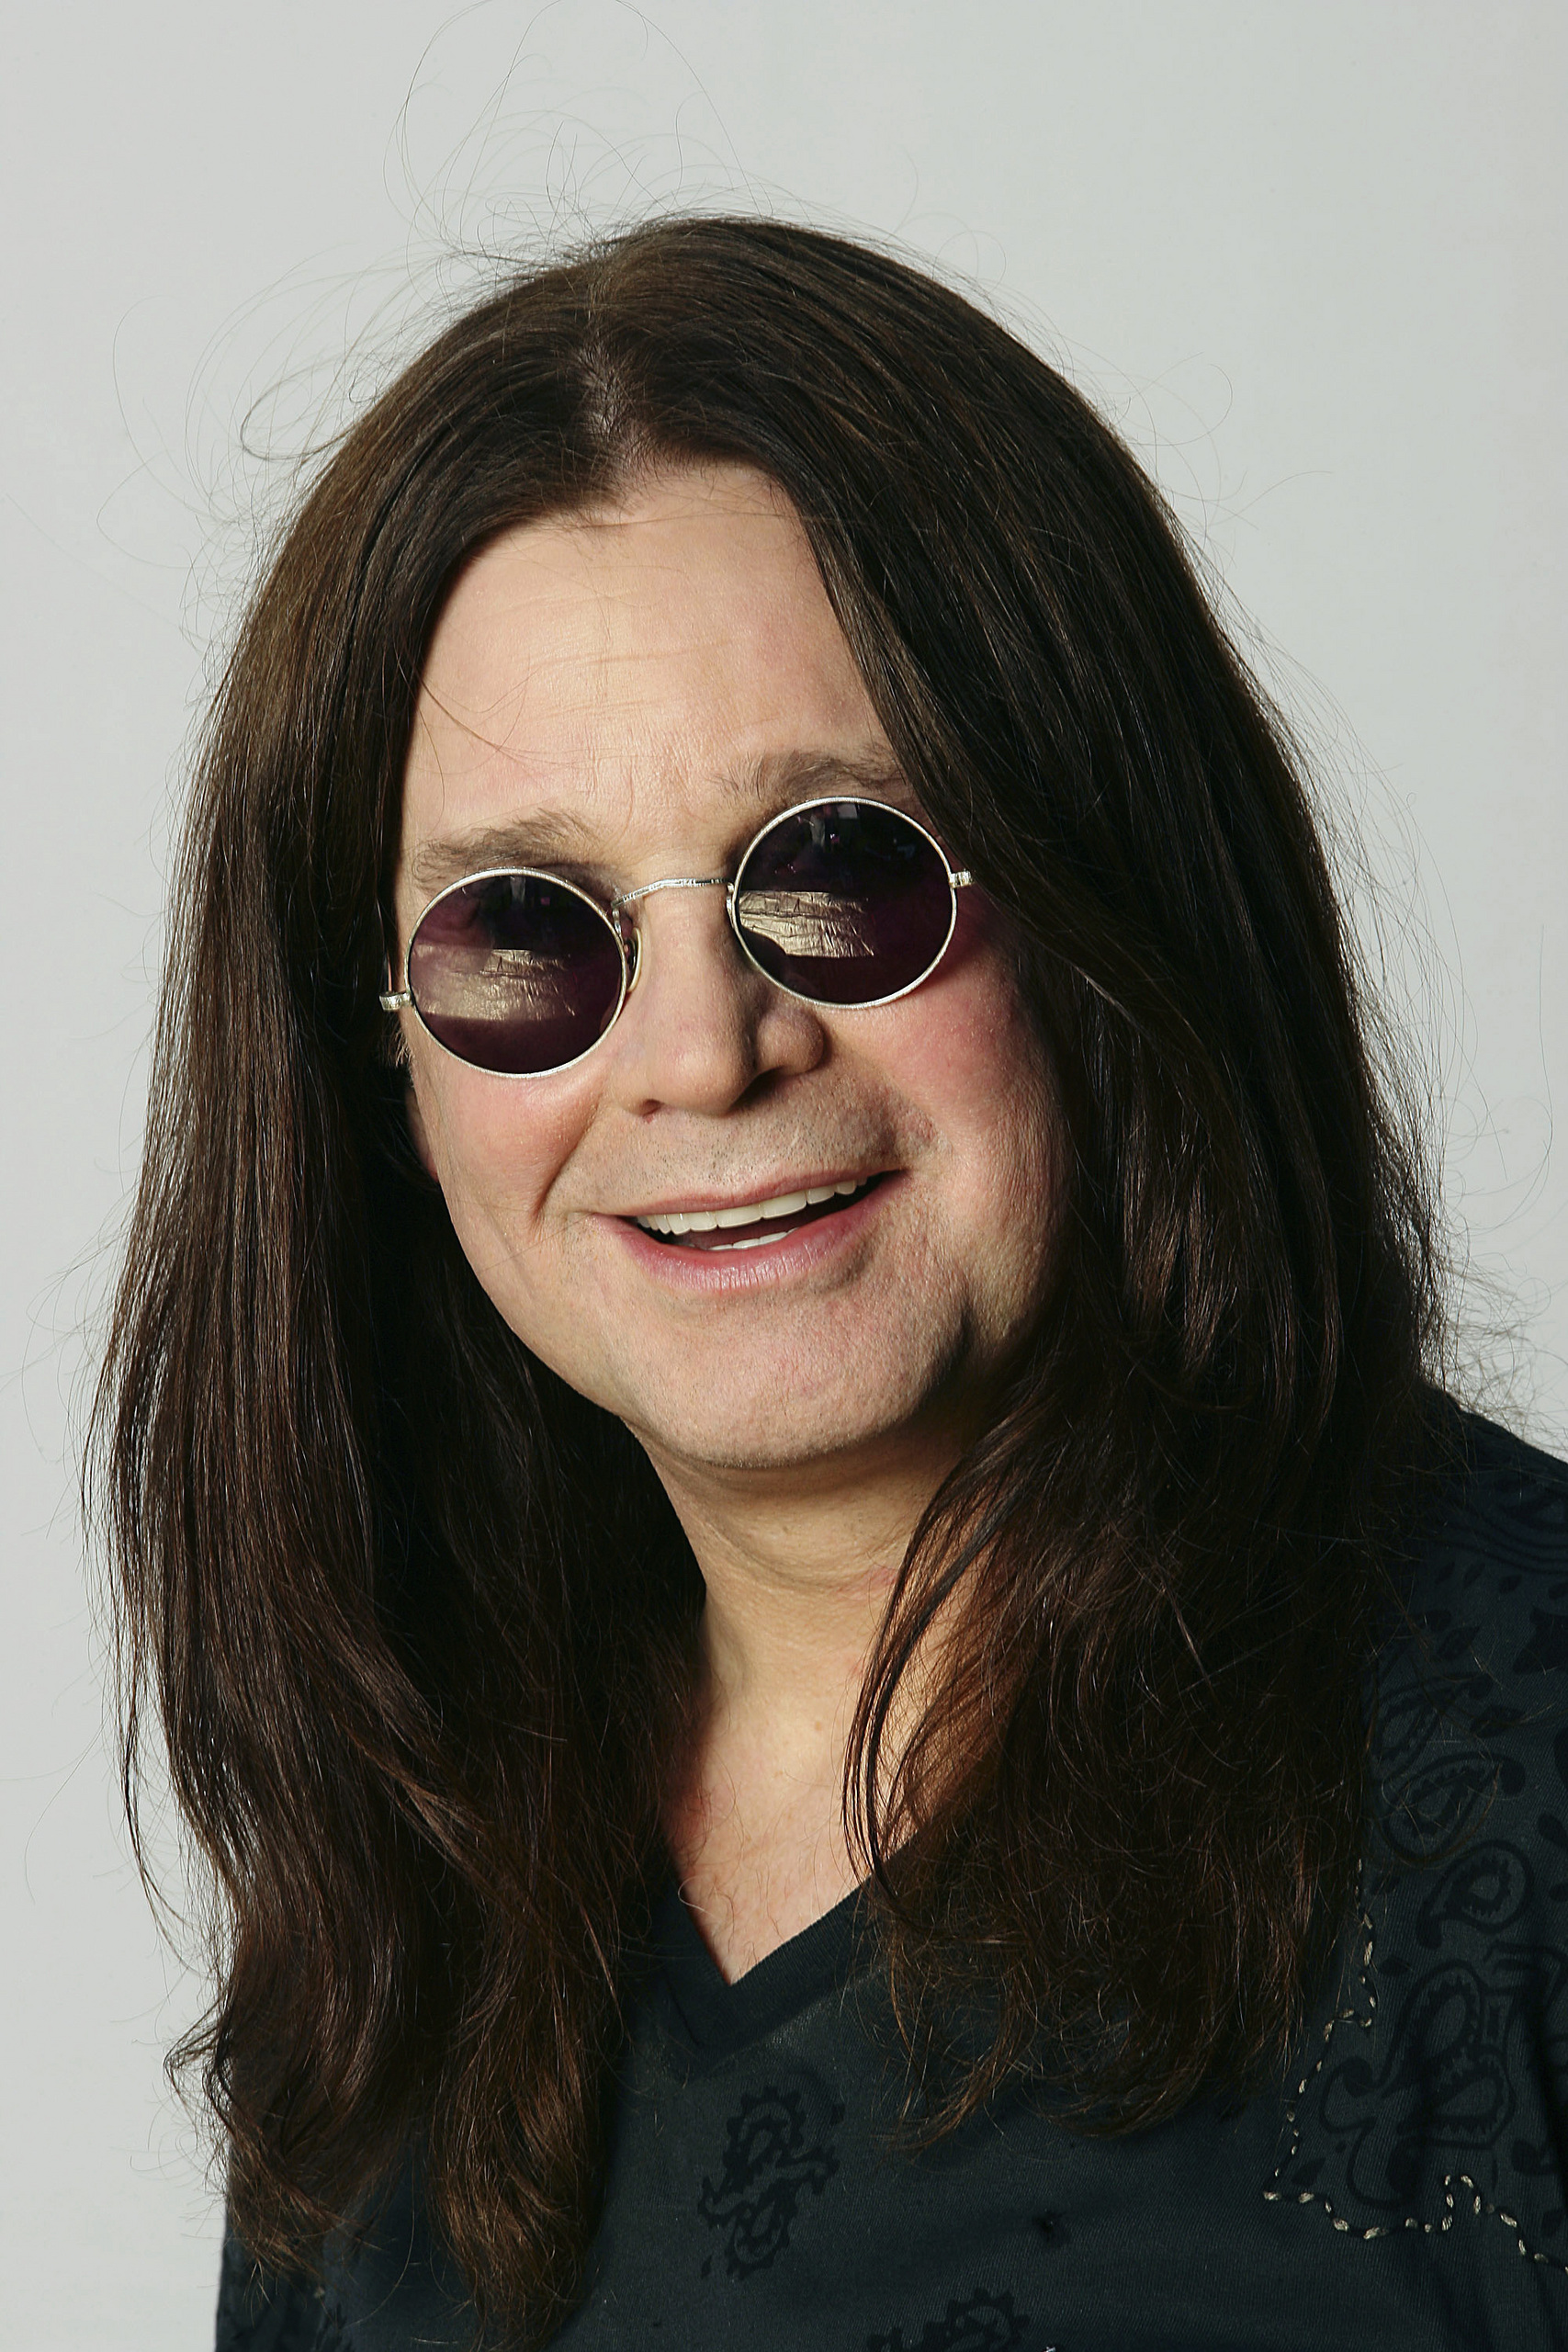 Ozzy Osbourne Wallpapers High Quality